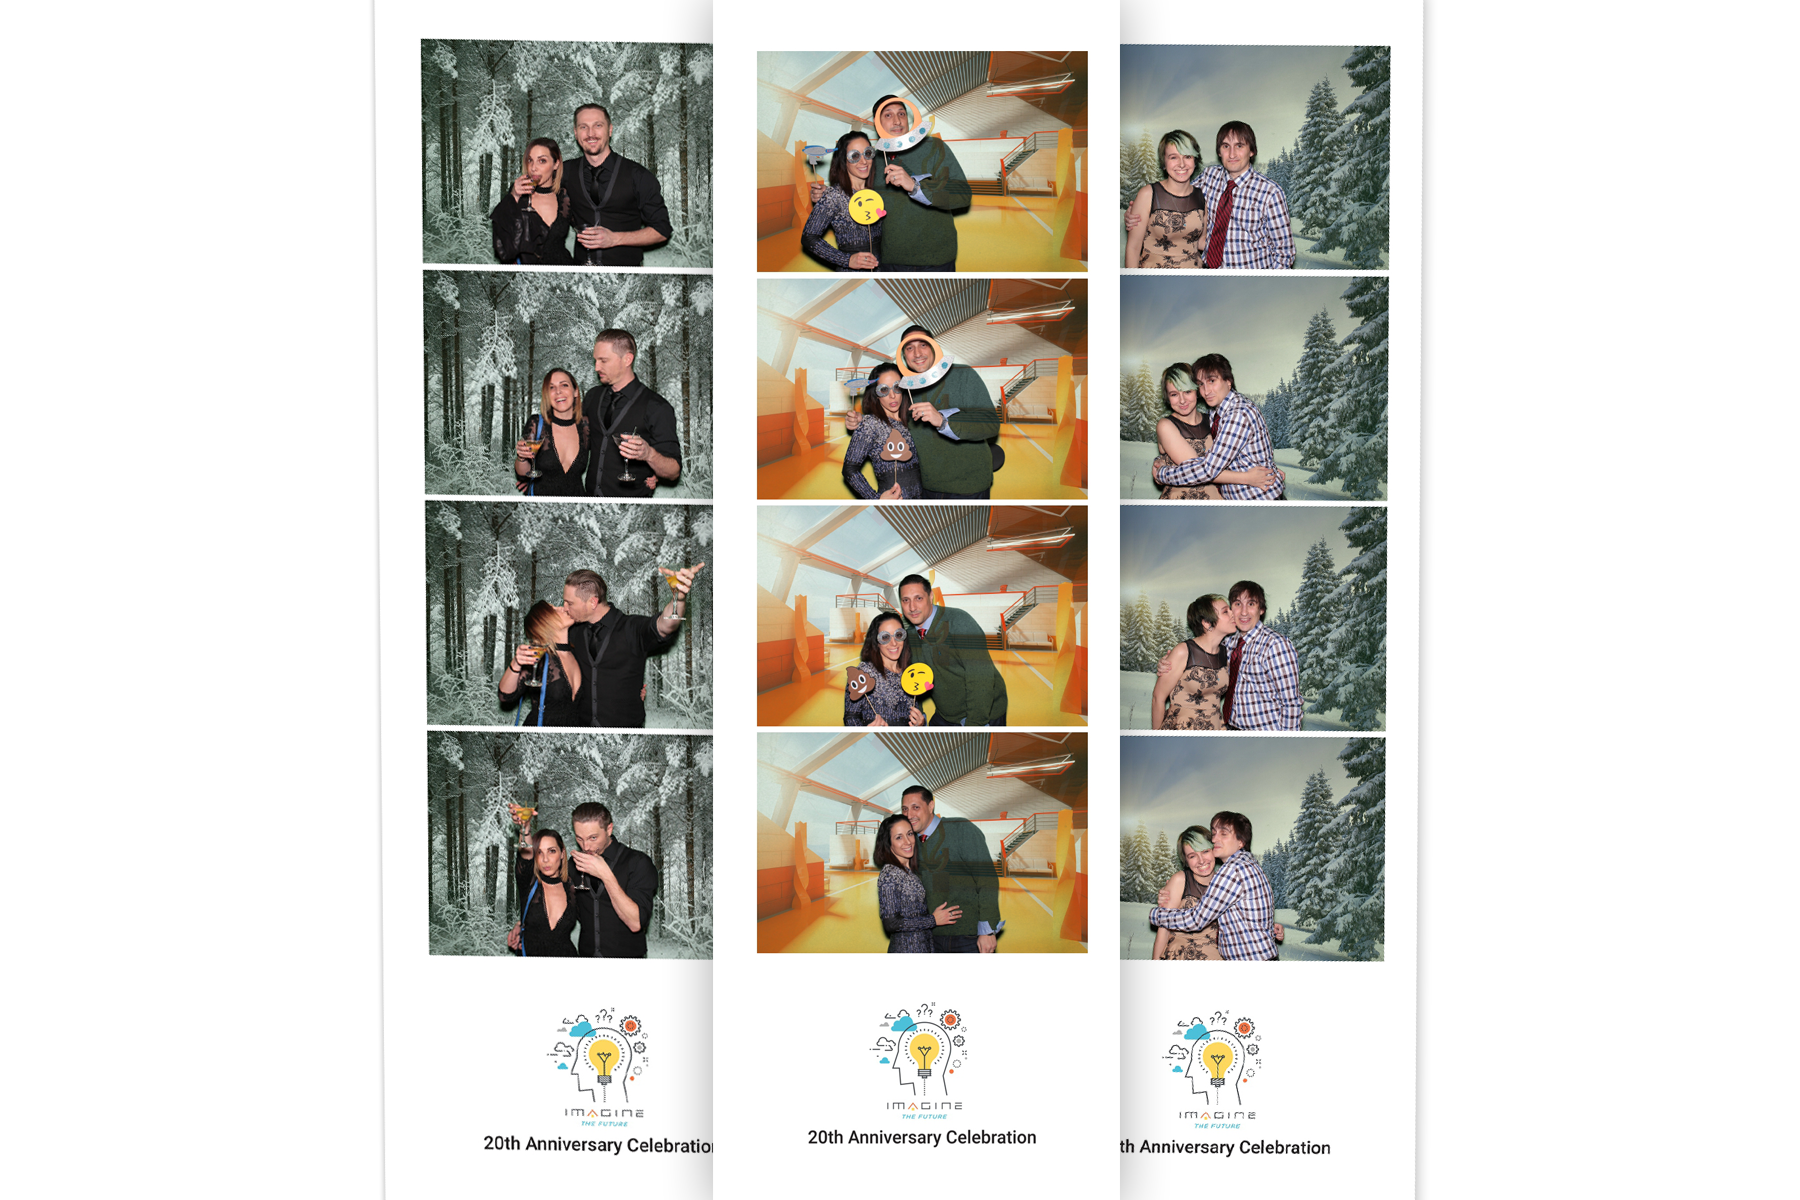 Film strip print layouts taken in a green screen photo booth at the 2016 realtor.com and move.com Holiday party in Westlake Village, Los Angeles, CA